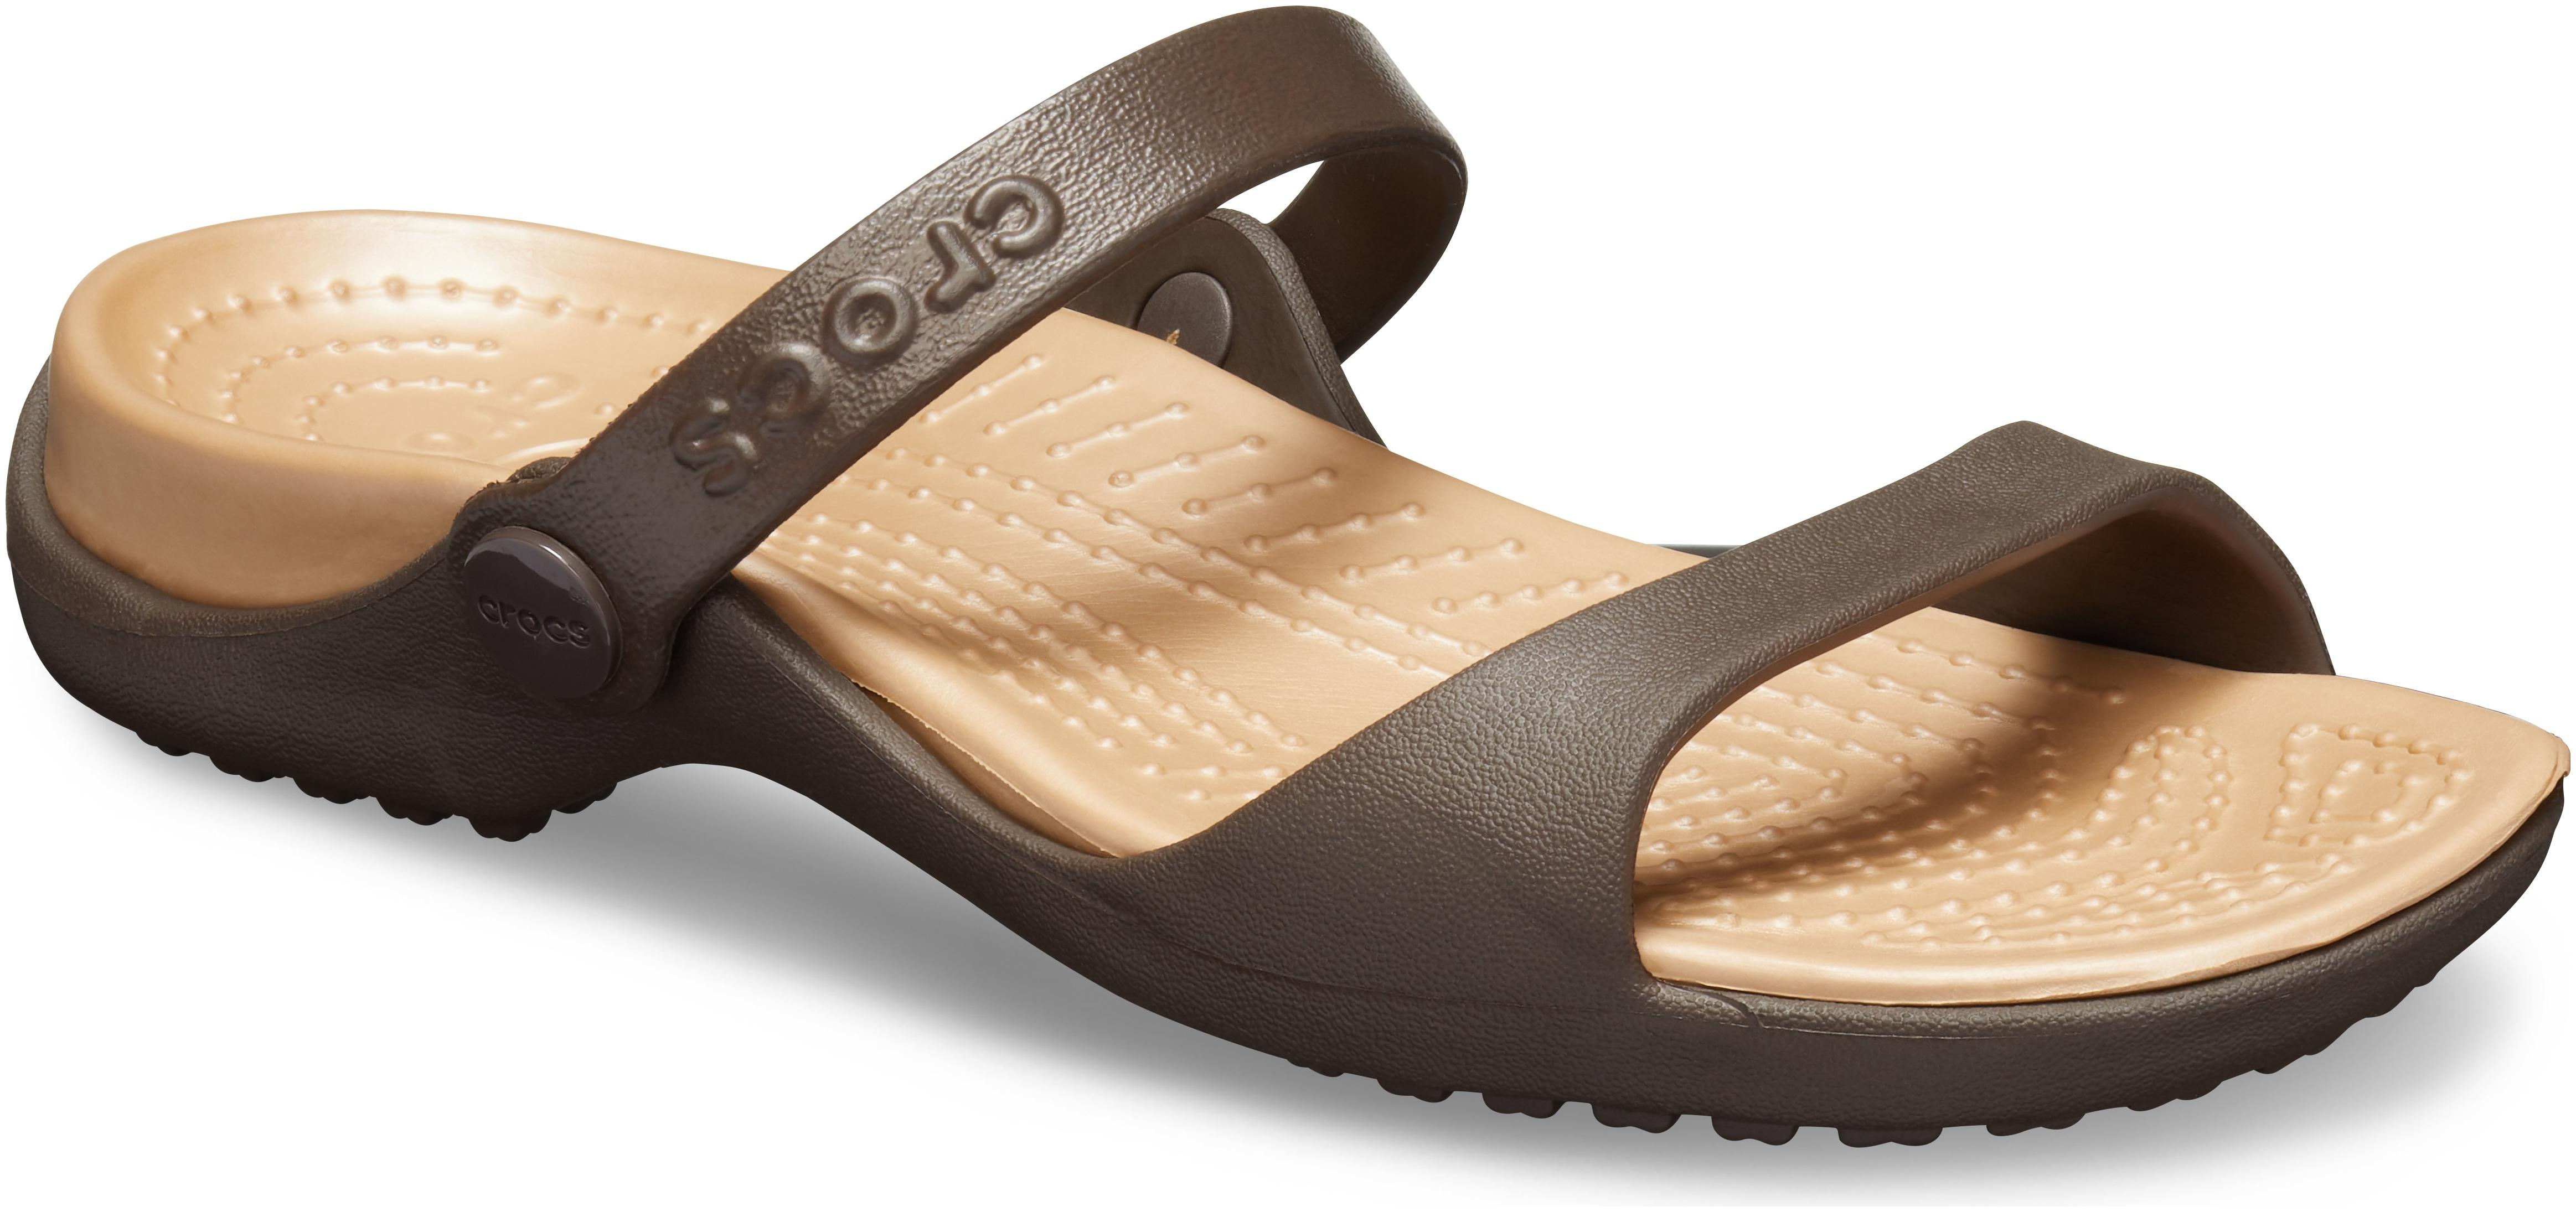 e8284e00f Crocs Patricia Brown Sandals for women - Get stylish shoes for Every ...